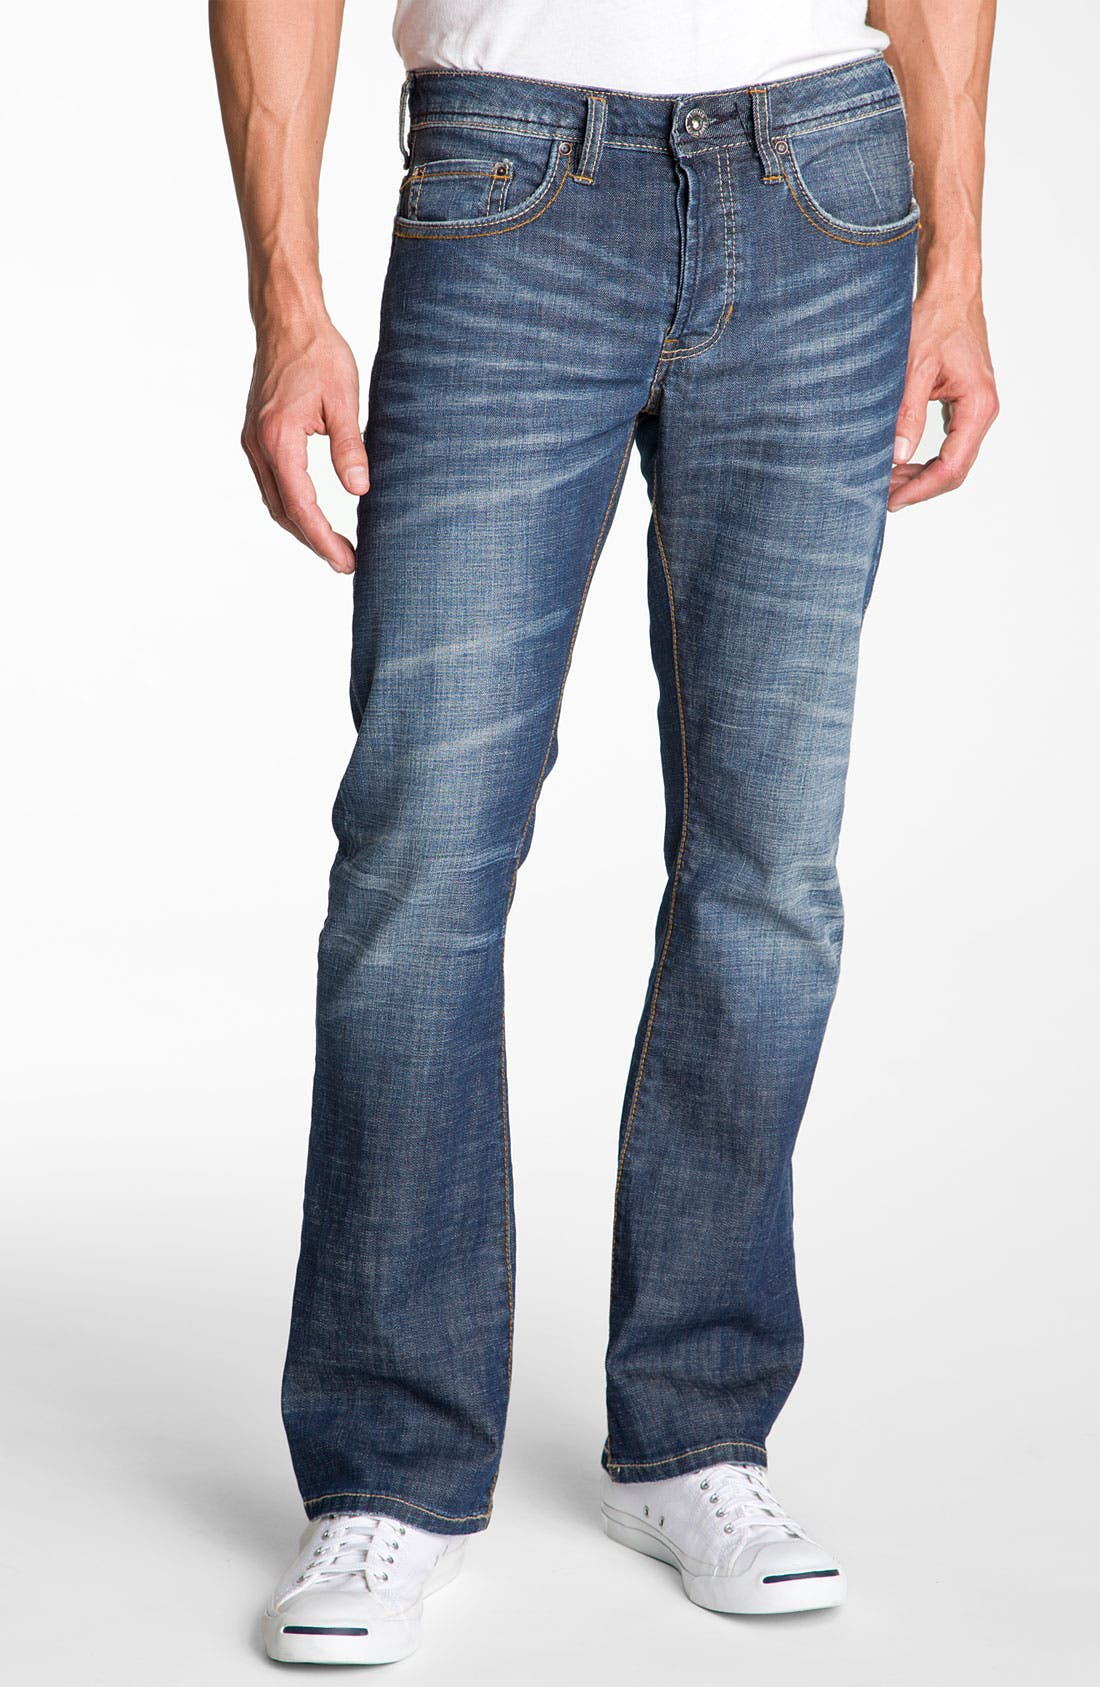 Alternate Image 1 Selected - Buffalo Jeans 'King' Bootcut Jeans (Distressed & Worn)